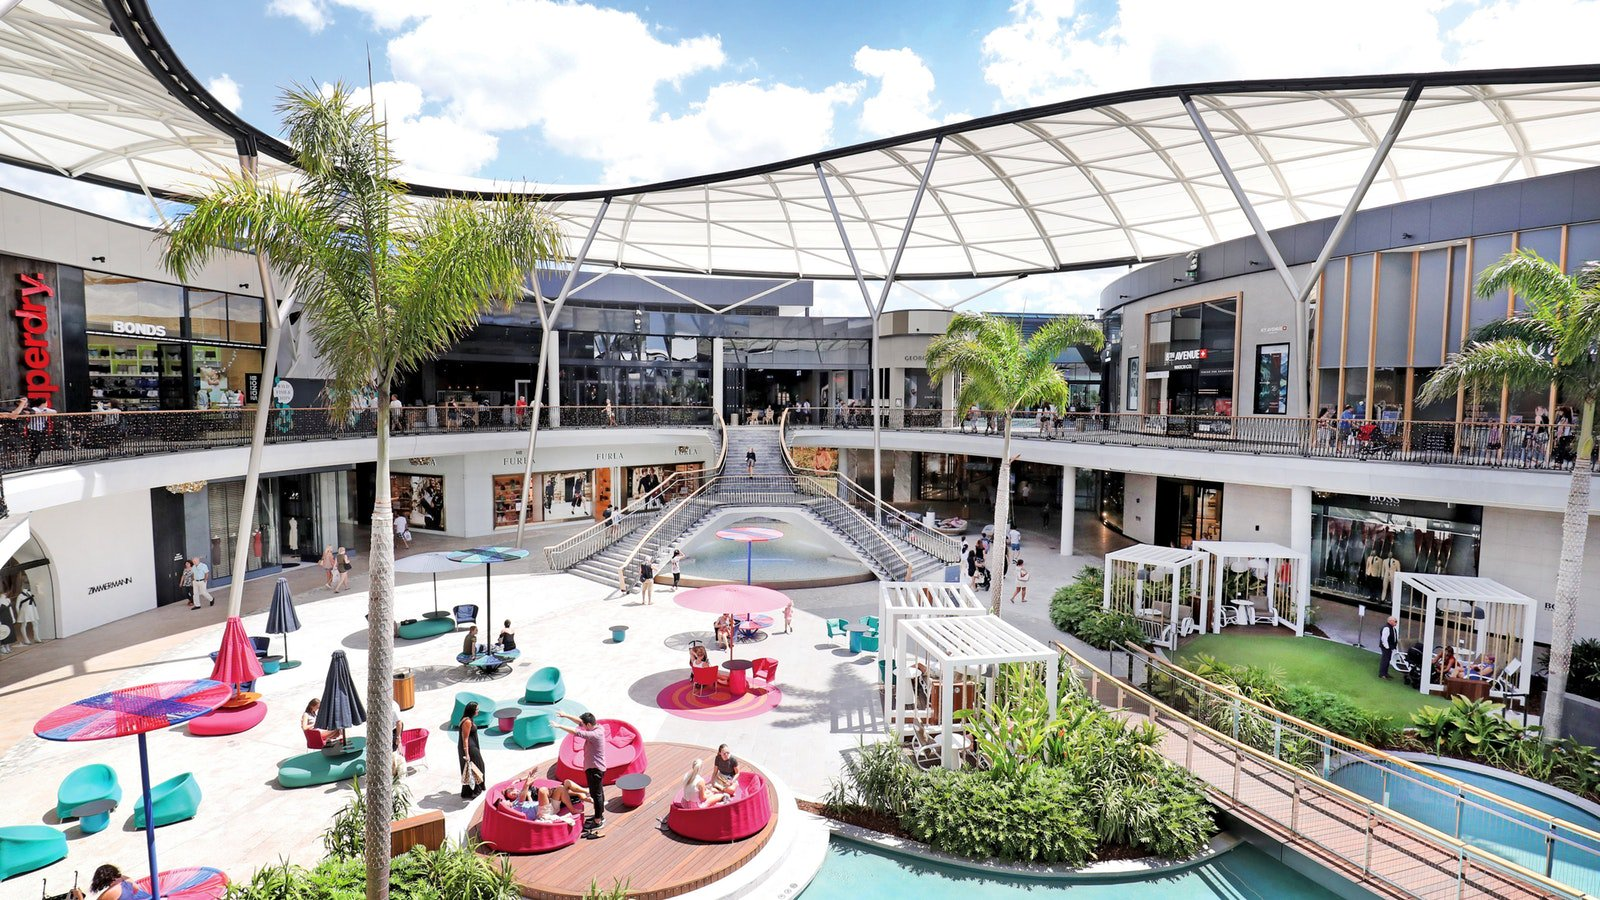 The public space at Pacific Fair, Queensland  image via Destination Gold Coast